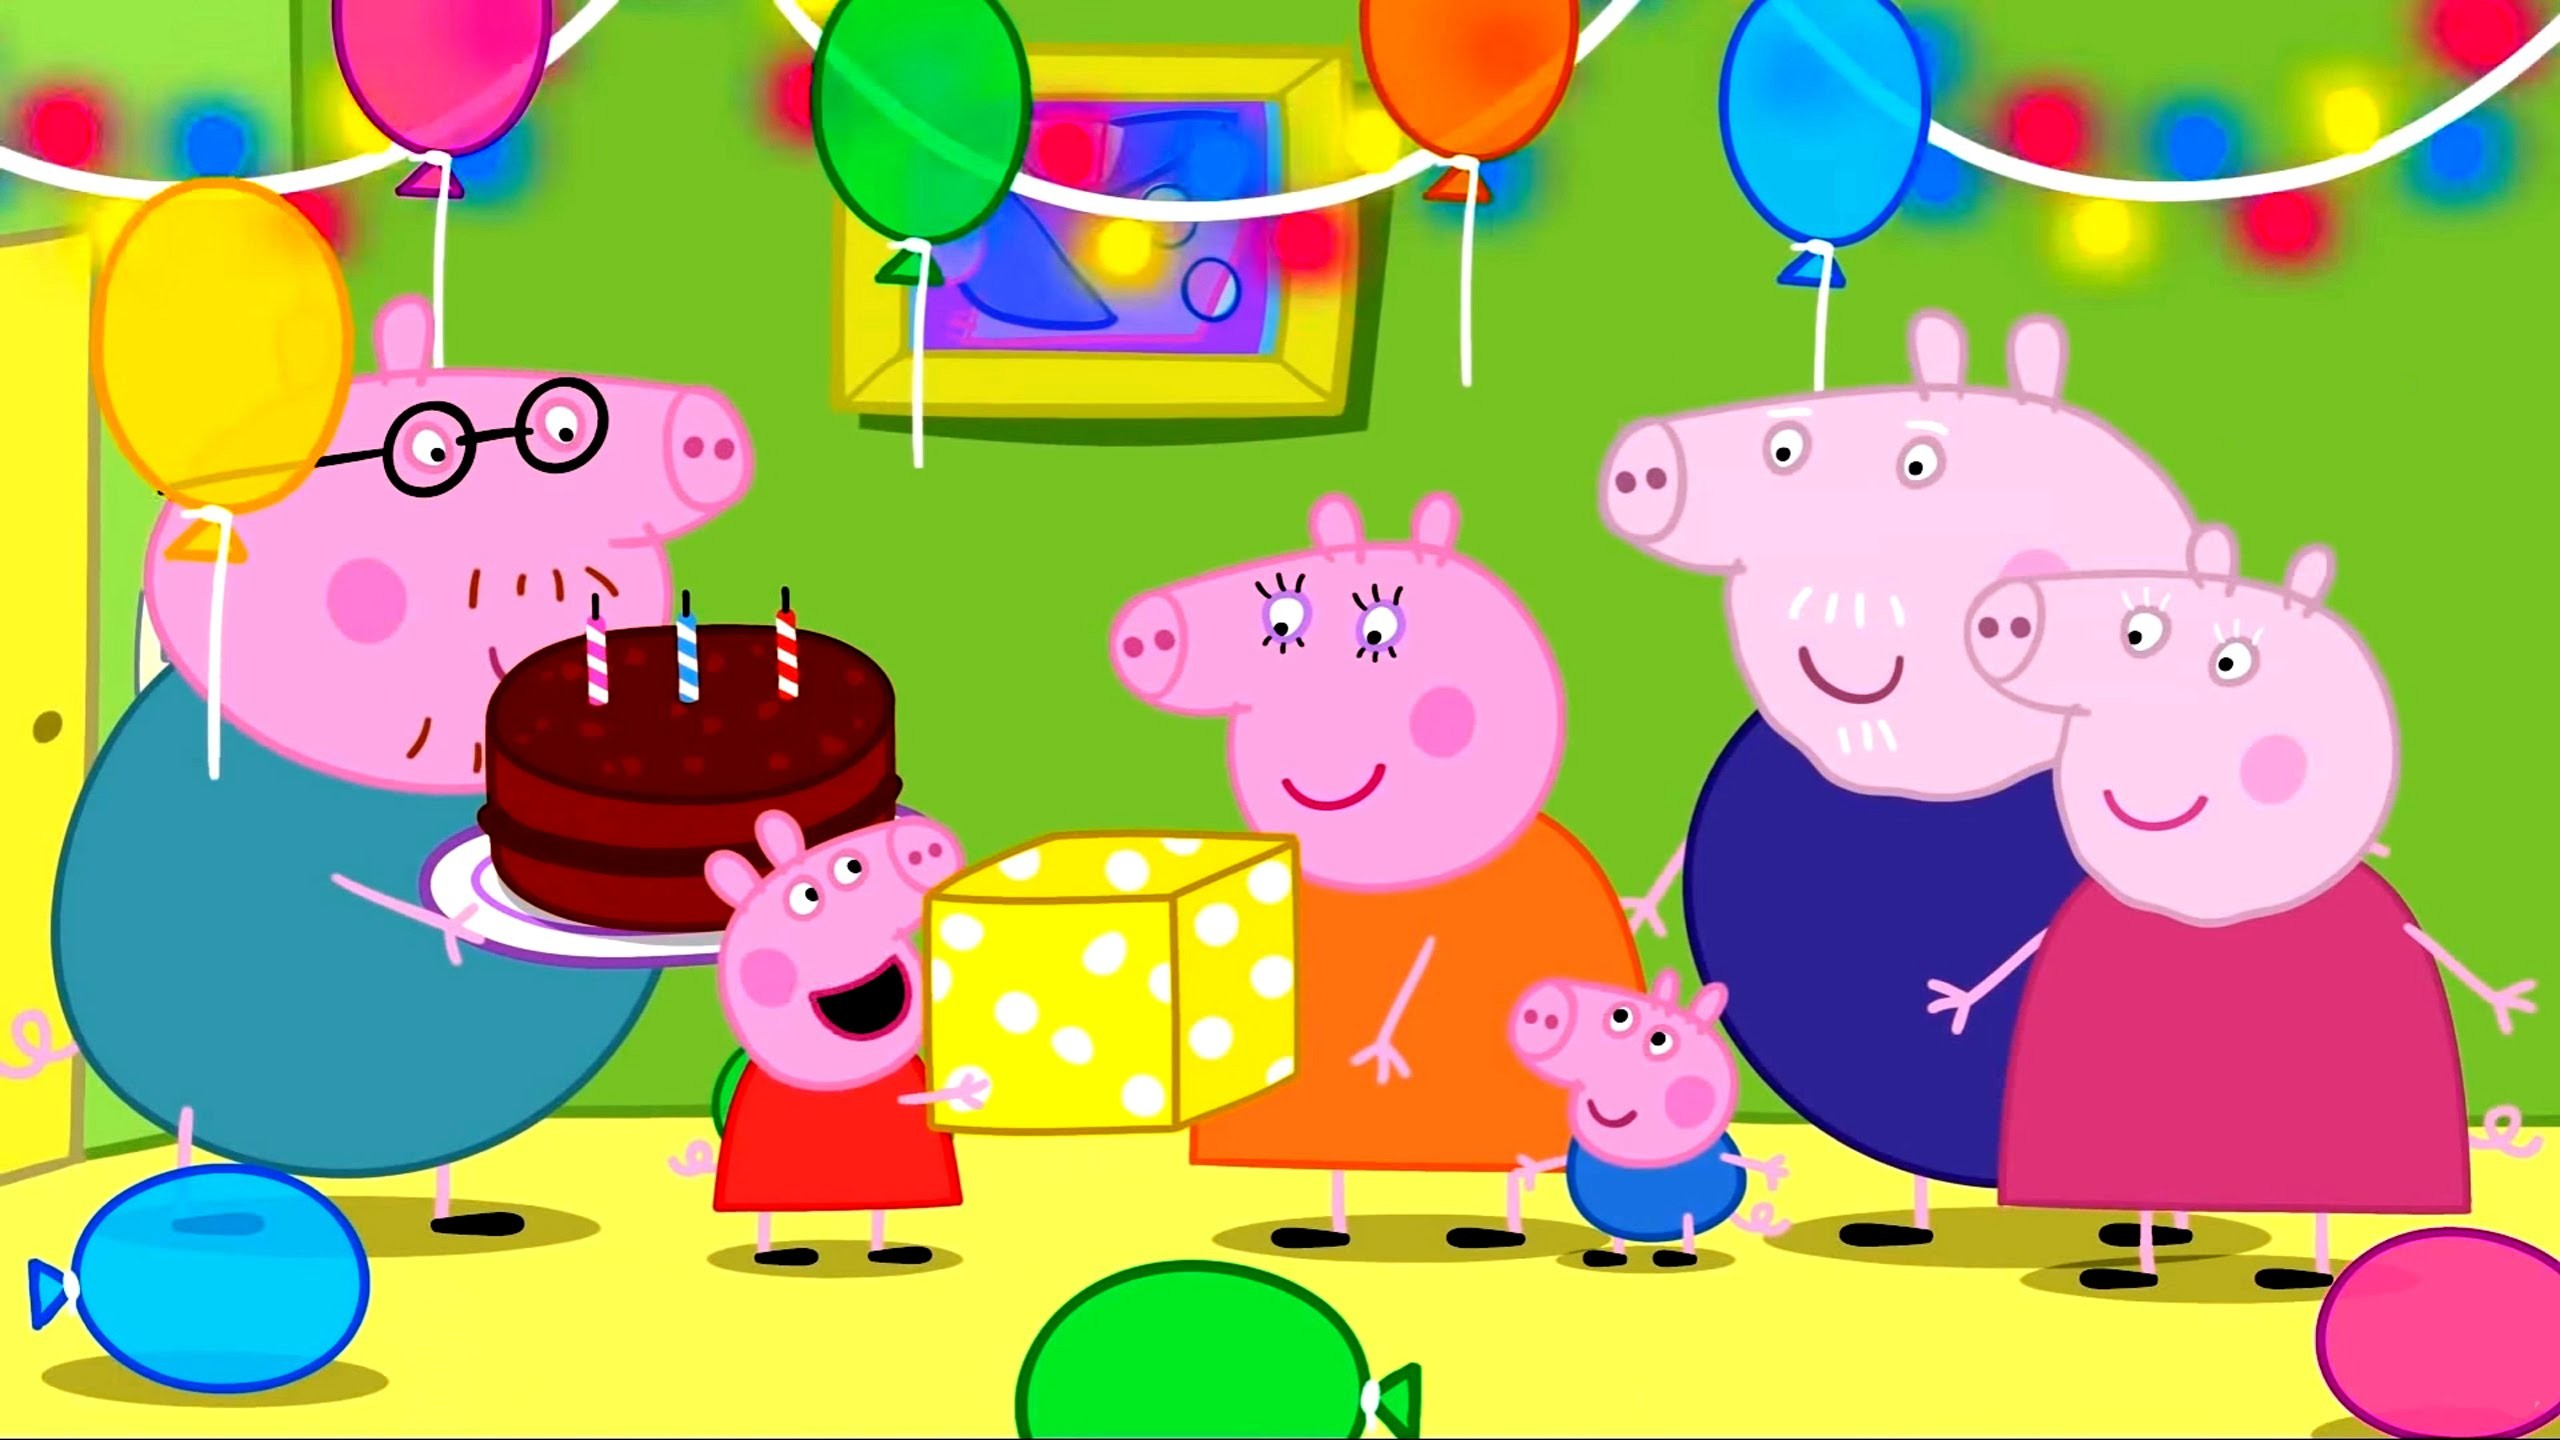 Peppa Pig Coloring Pages for Kids Peppa Pig Coloring Games Peppa Pig daddy  pig mummy Birthday day – YouTube